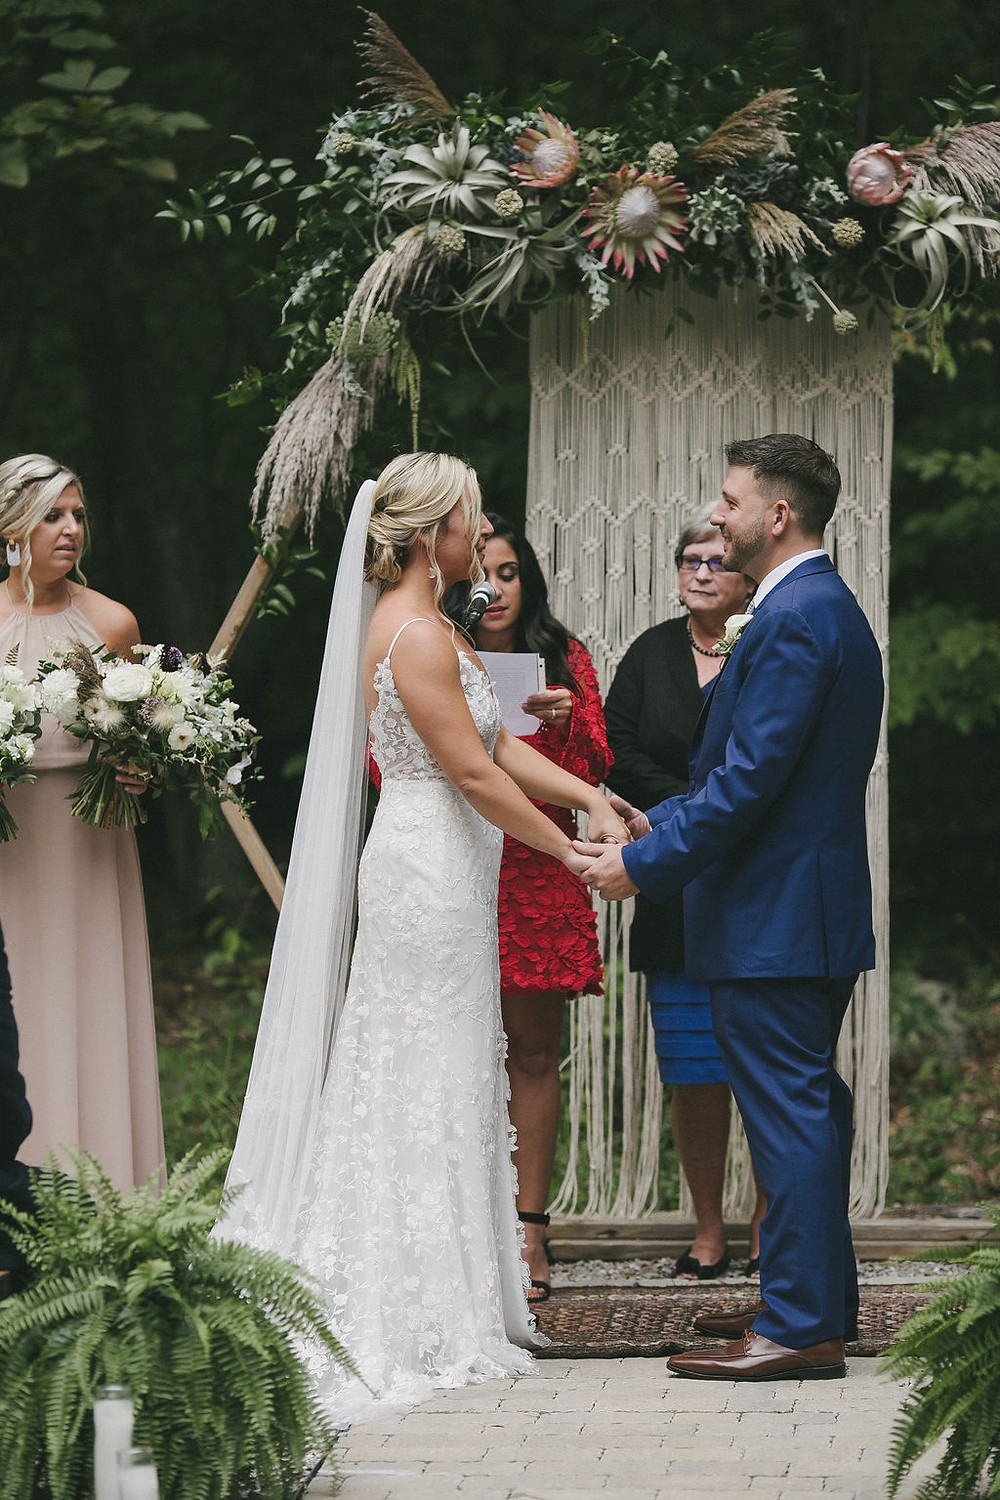 Bohemian rustic wedding with hexagon arch at Chatfield Hollow Inn